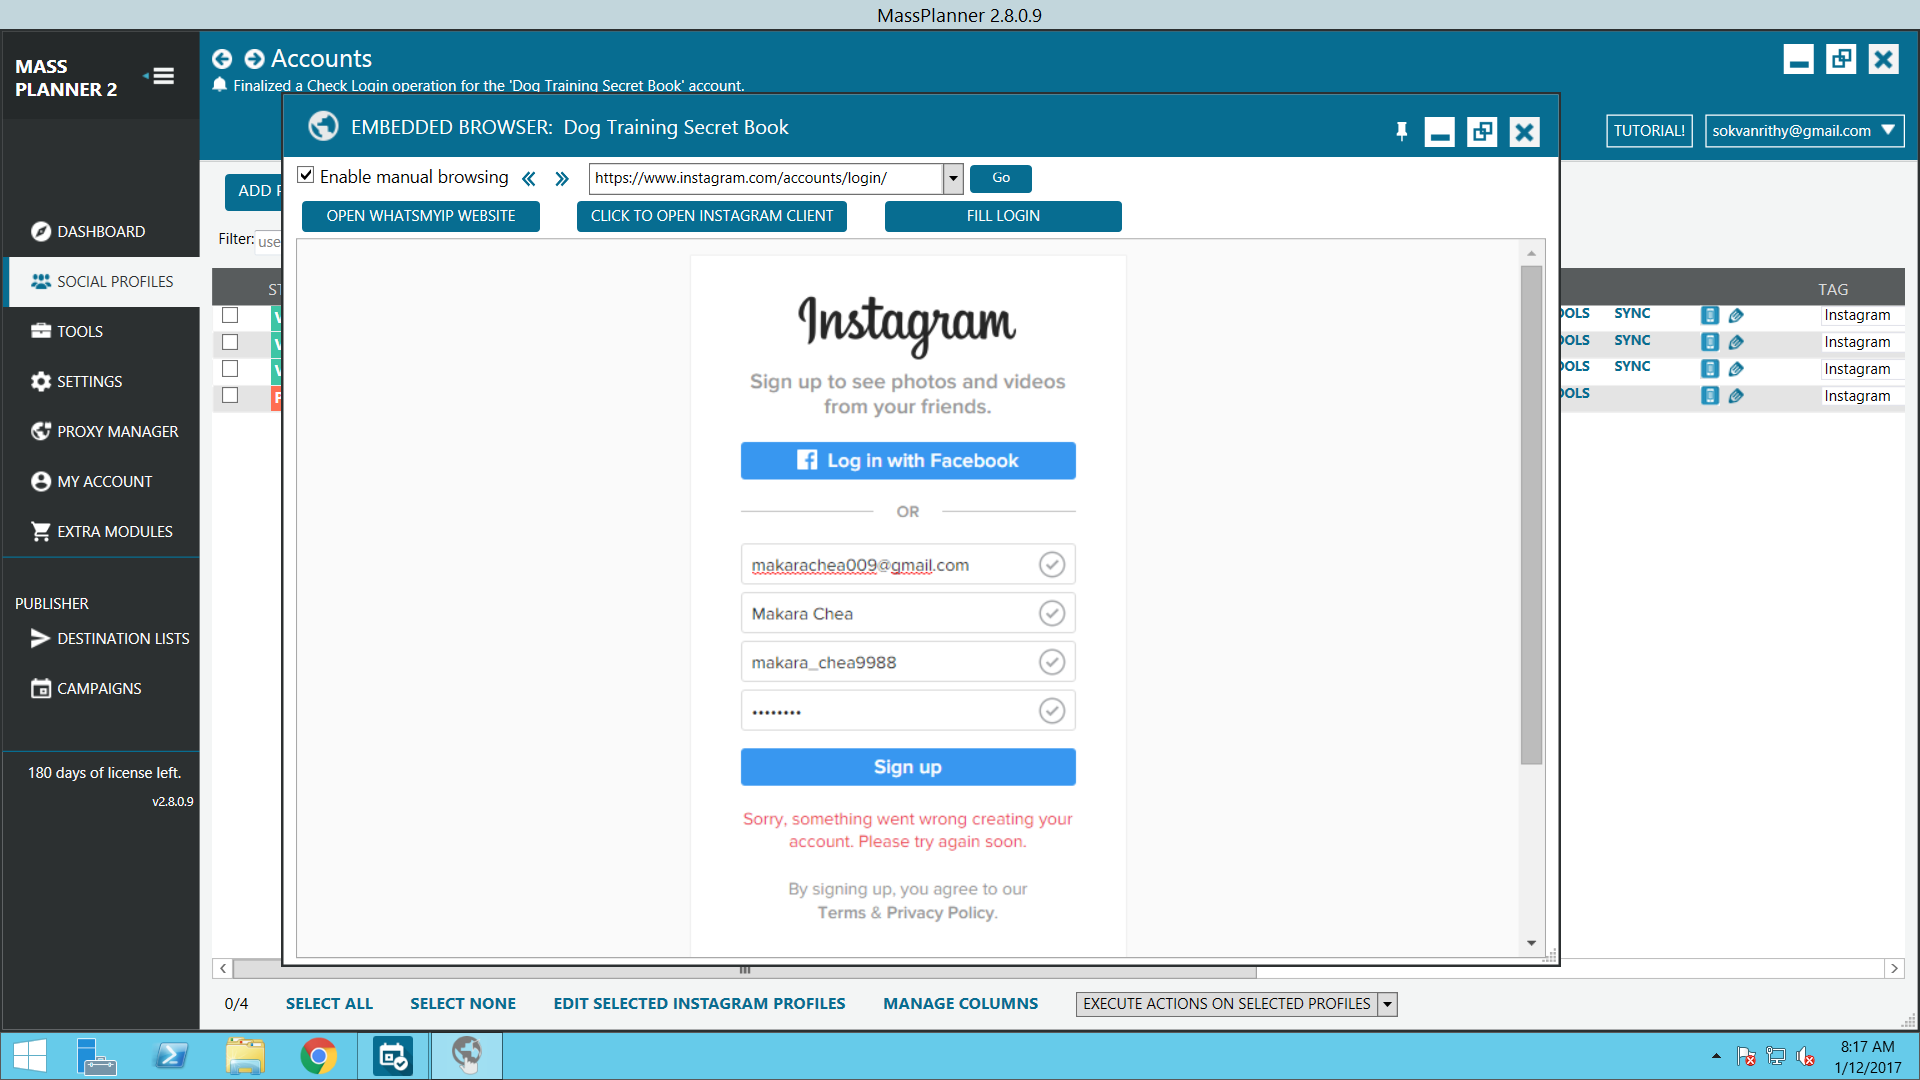 Create an instagram account - Untitled Png1920x1080 163 Kb